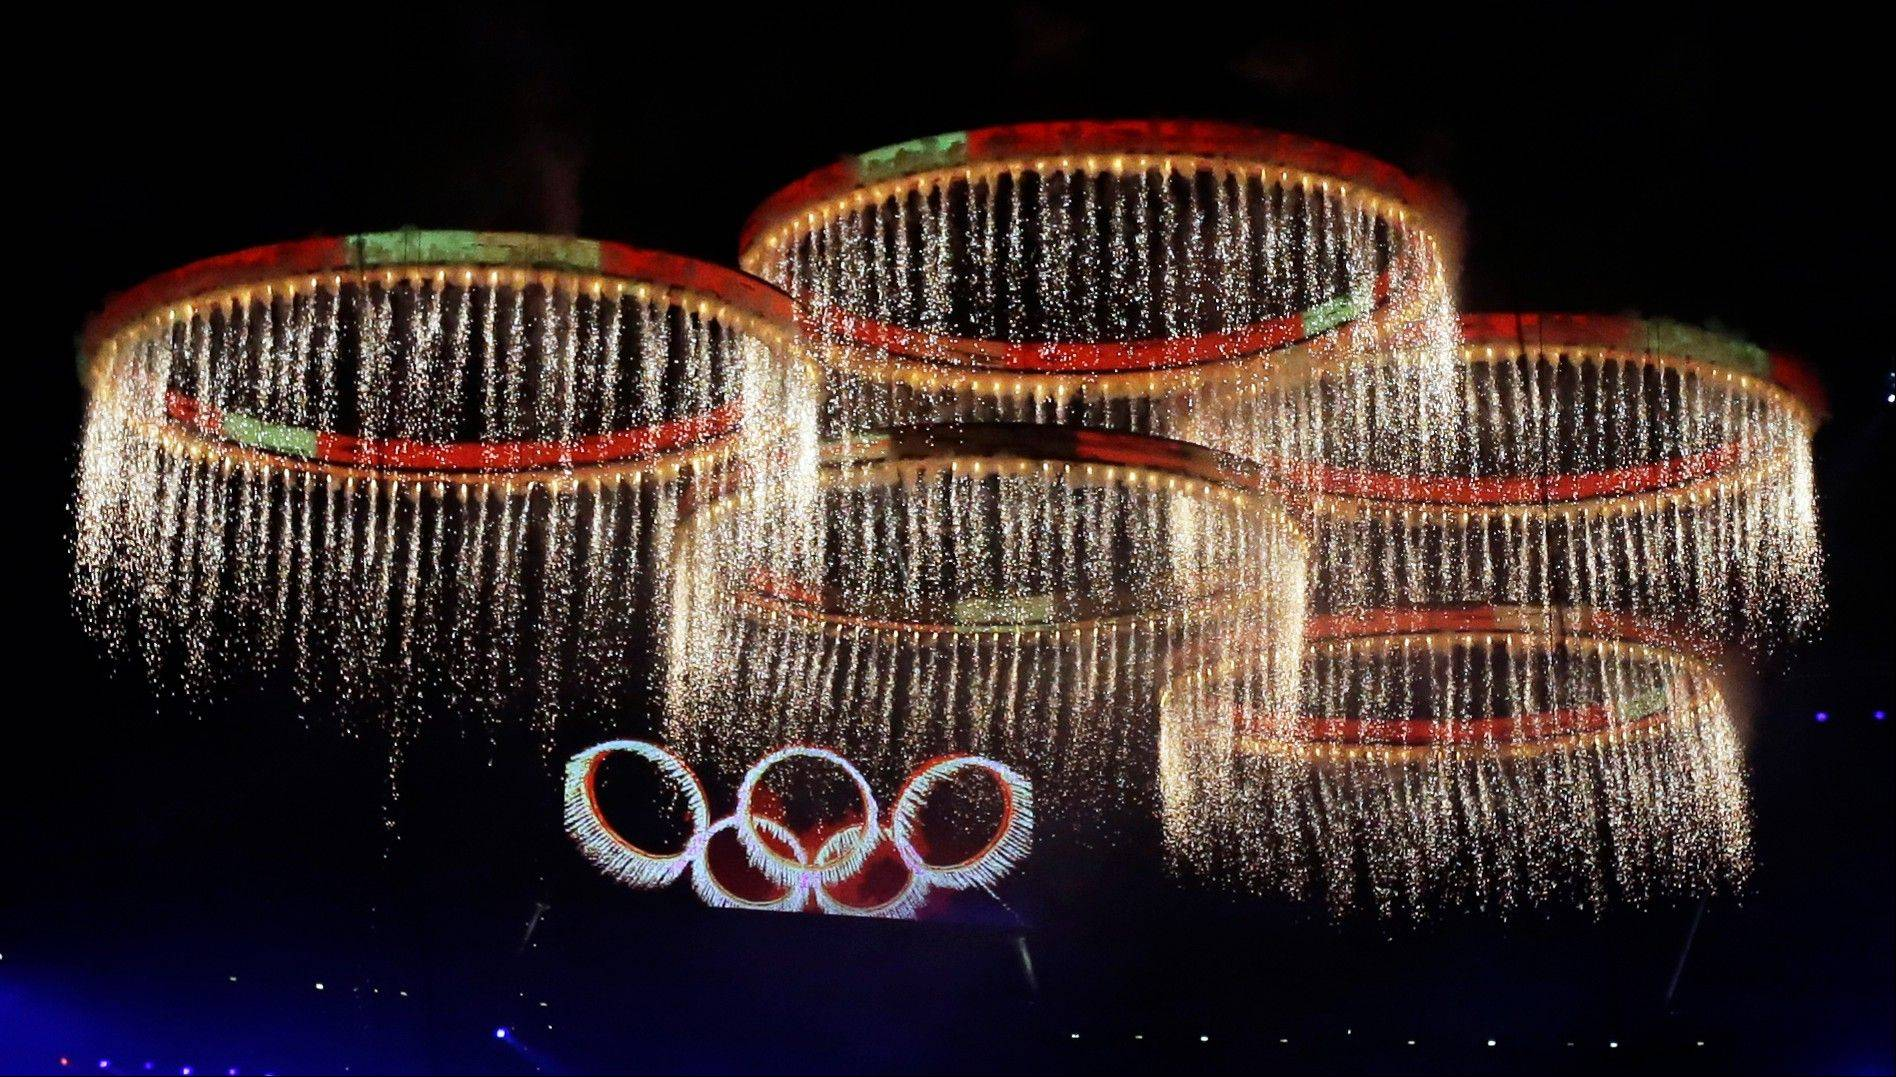 The Olympic rings are illuminated during the Opening Ceremony at the 2012 Summer Olympics, Friday, July 27, 2012, in London.